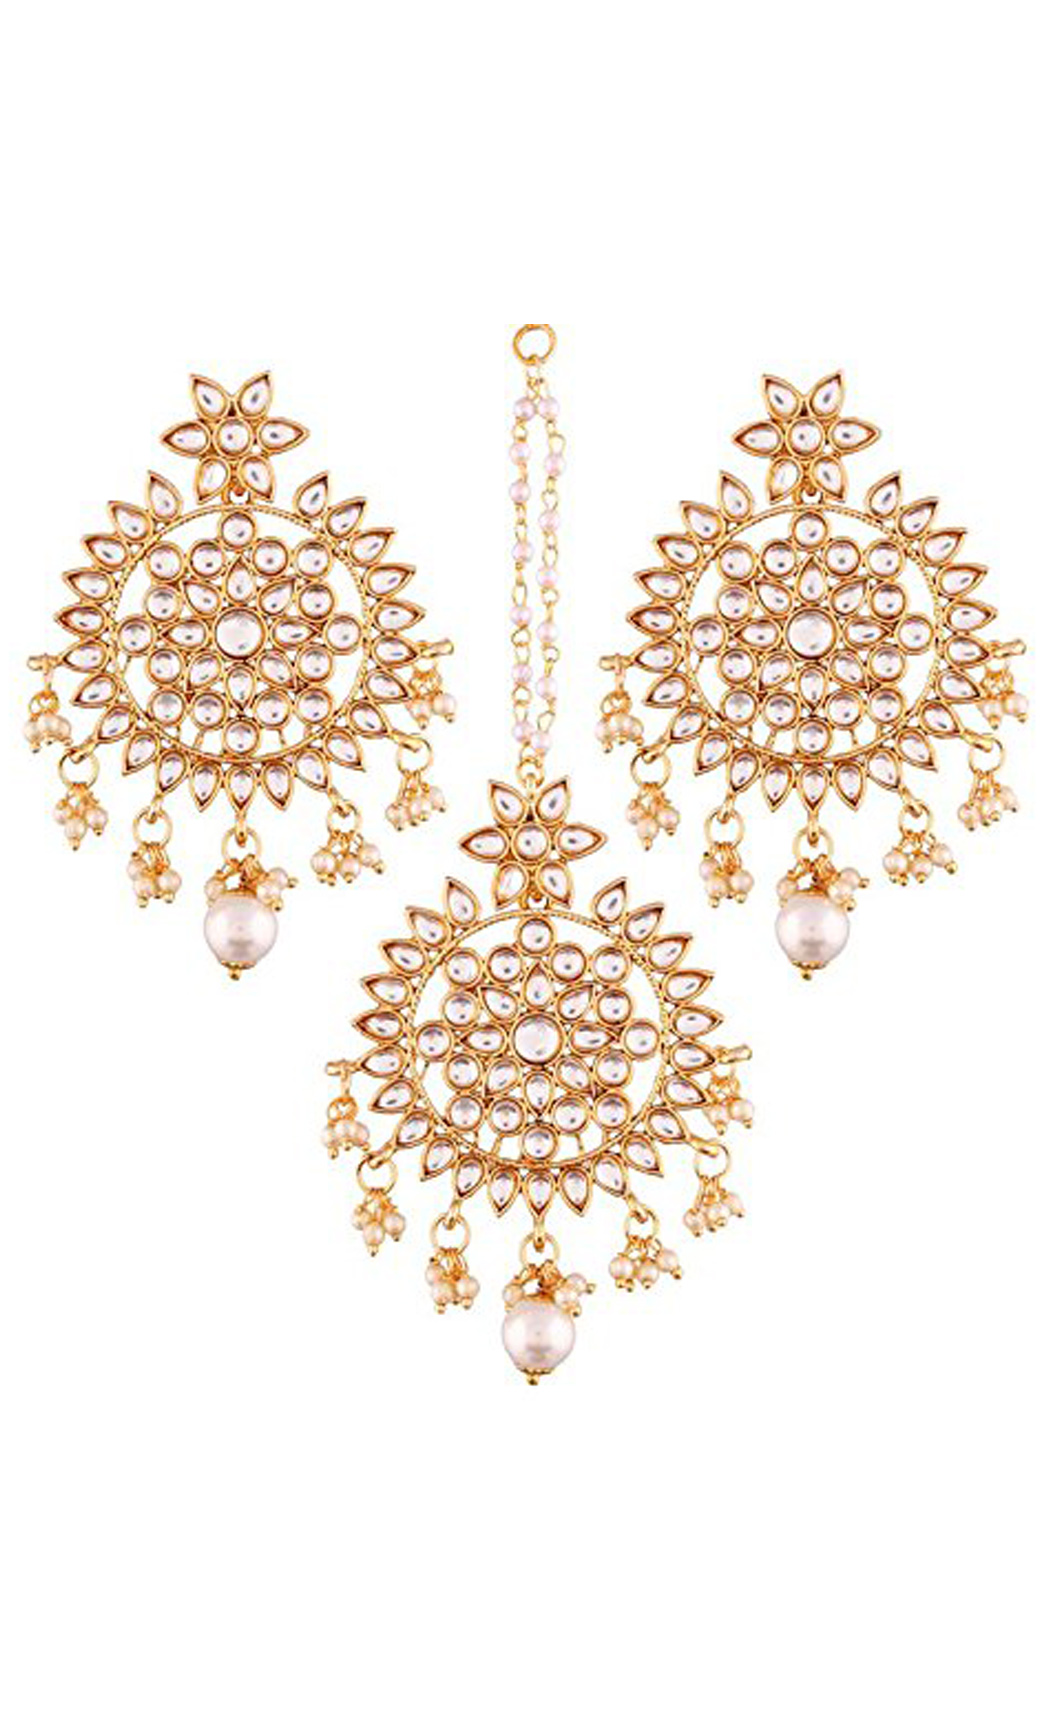 Flower Kundan Chaandbali Earrings and Maang Tikka Gold Plated| Indian Bridal Jewellery Sets With Price